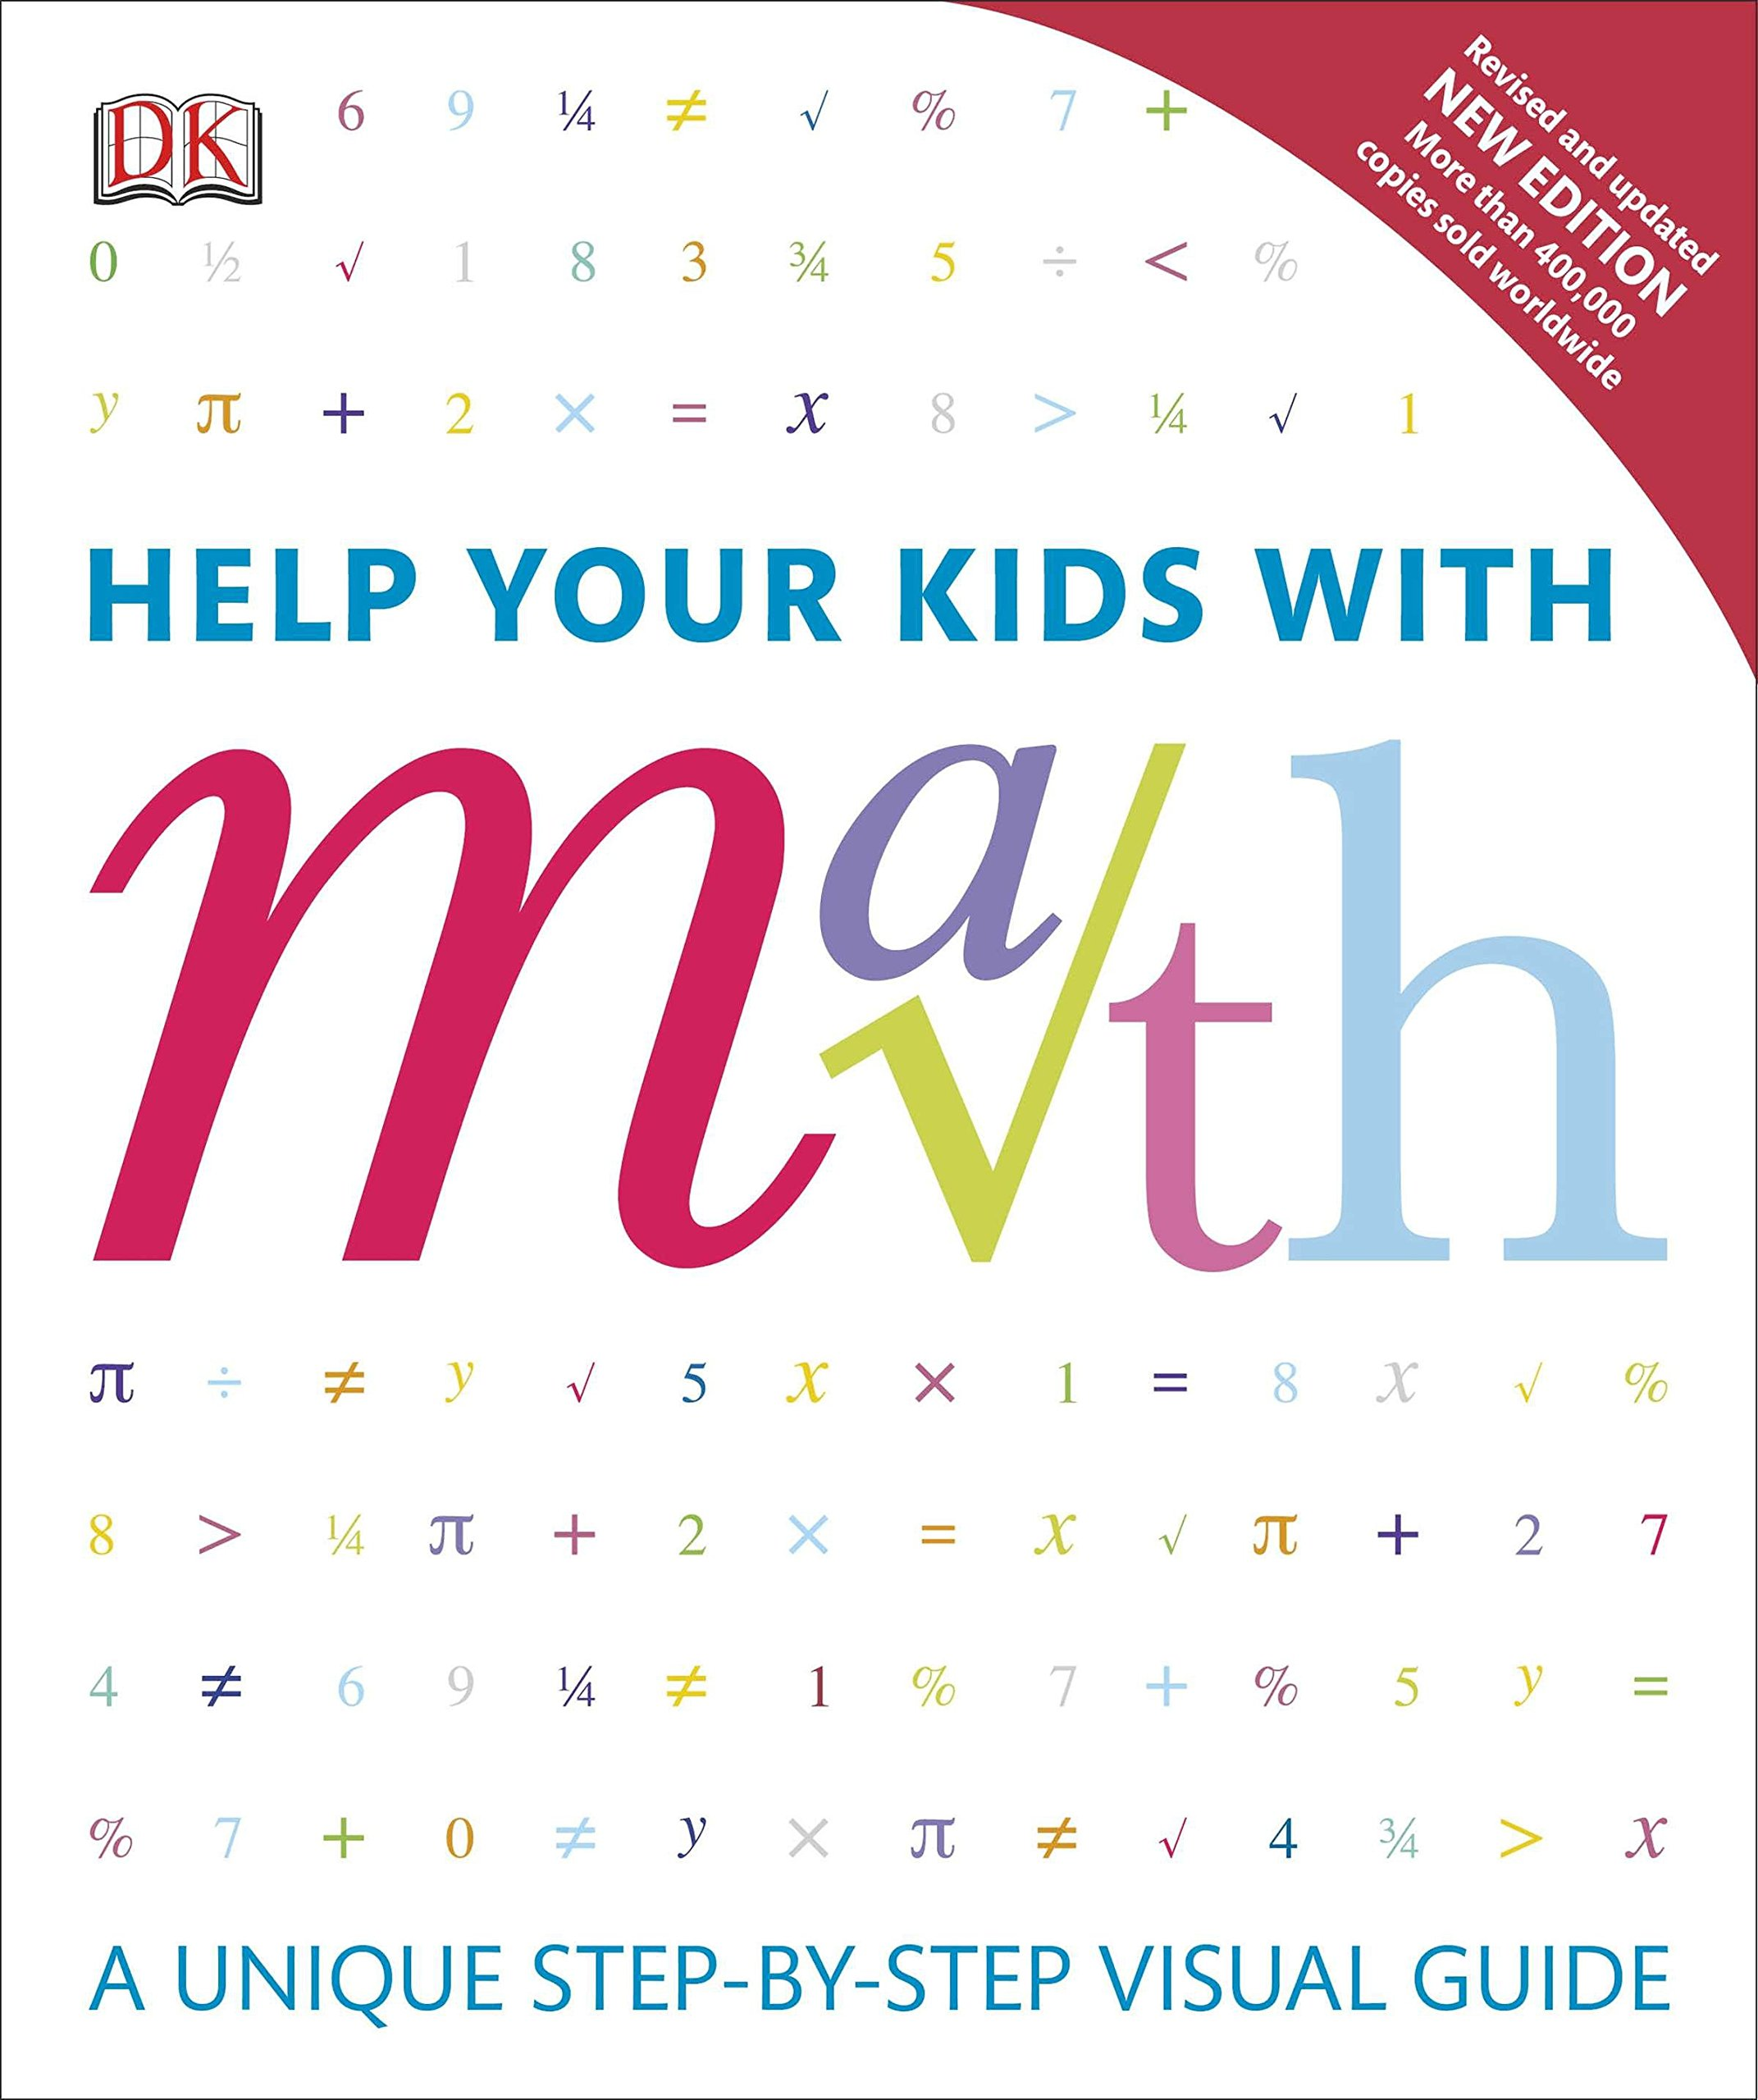 Cover Help Your Kids with Math. DK Canada. Image Credit Amazon. Book Review Oombawka Design